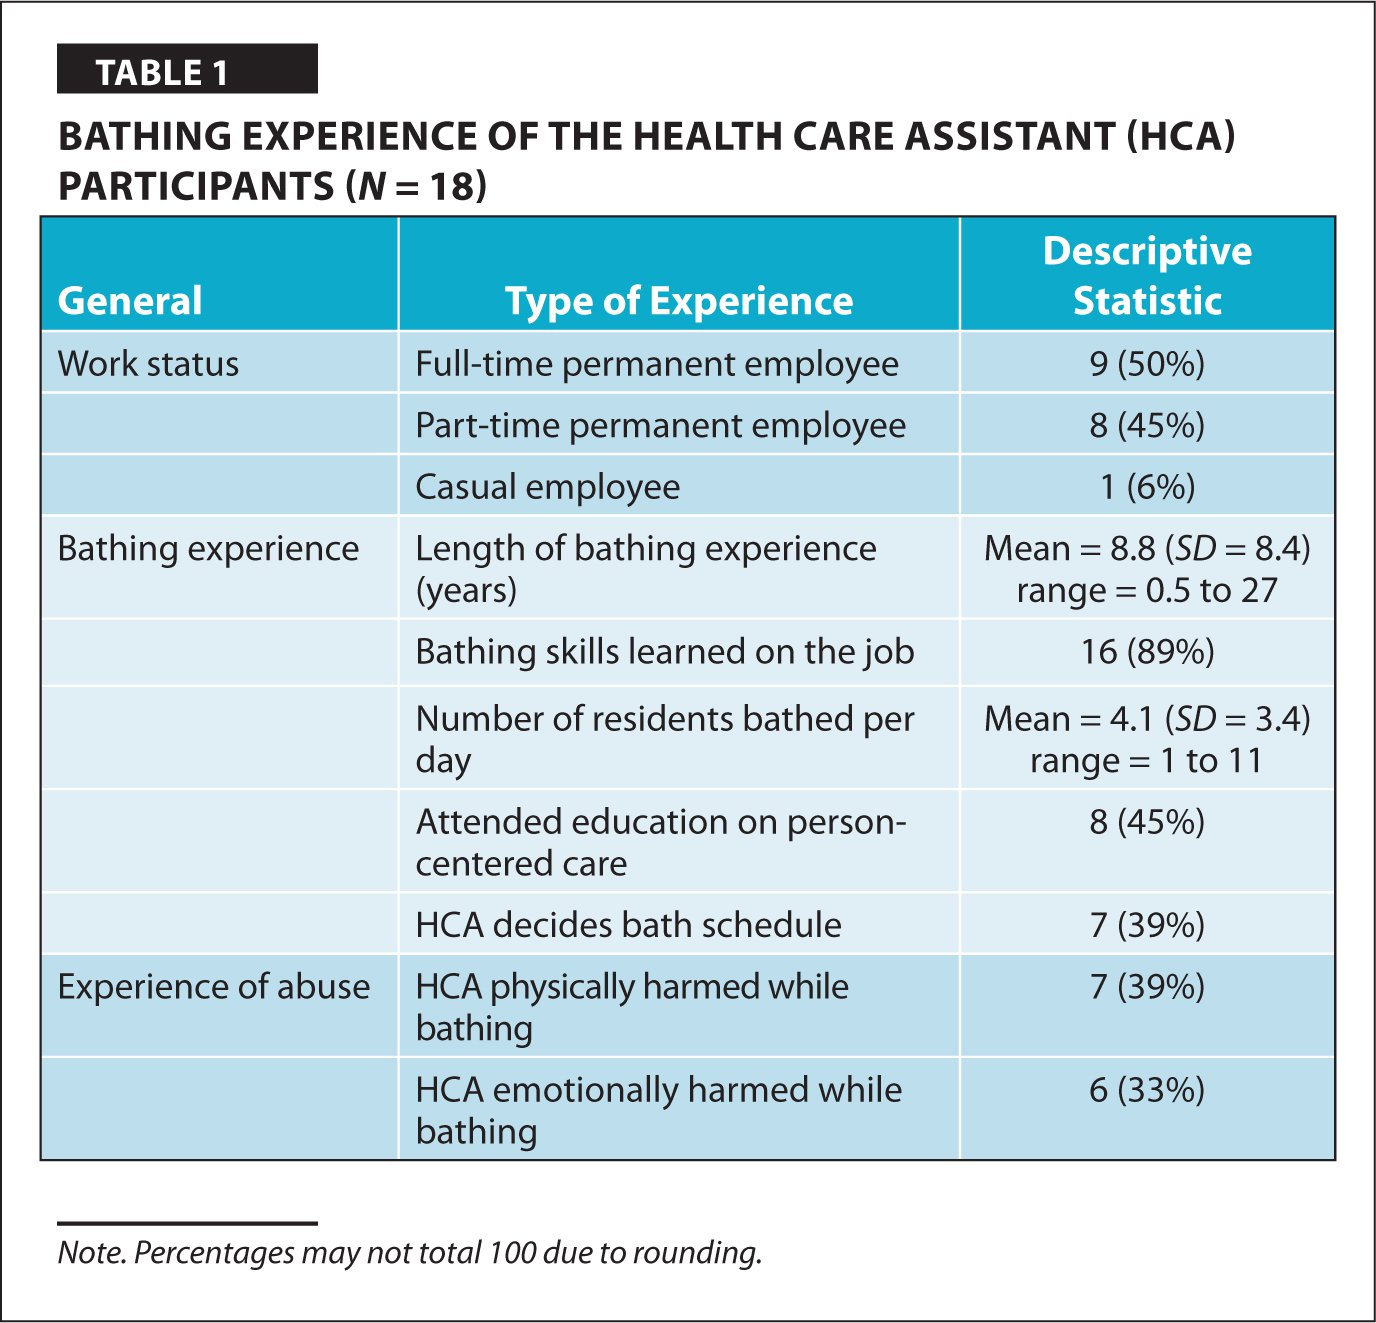 Bathing Experience of the Health Care Assistant (HCA) Participants (N = 18)